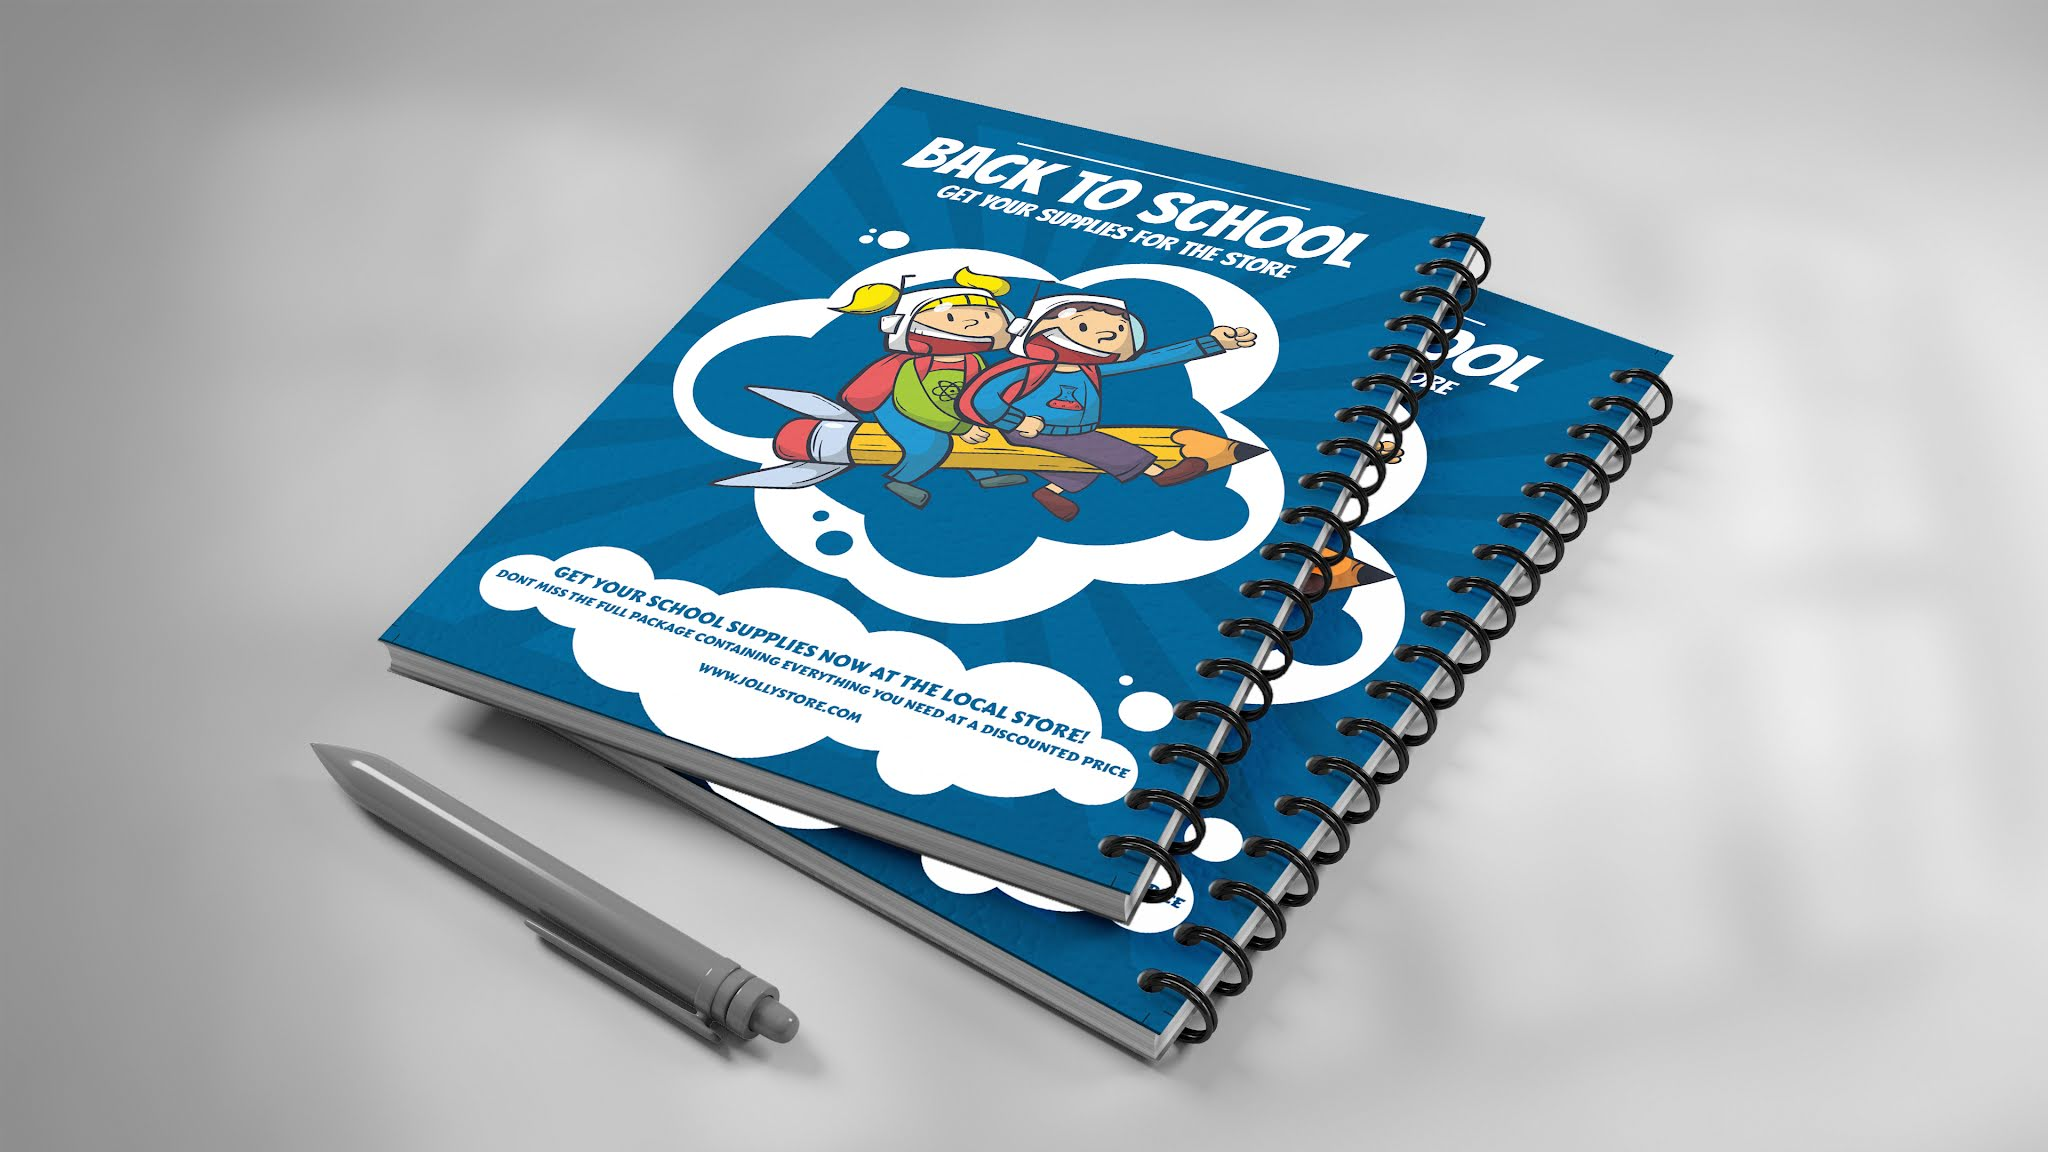 Download a book cover and a memo for schools PSD, suitable for a beautiful blue color flyer poster